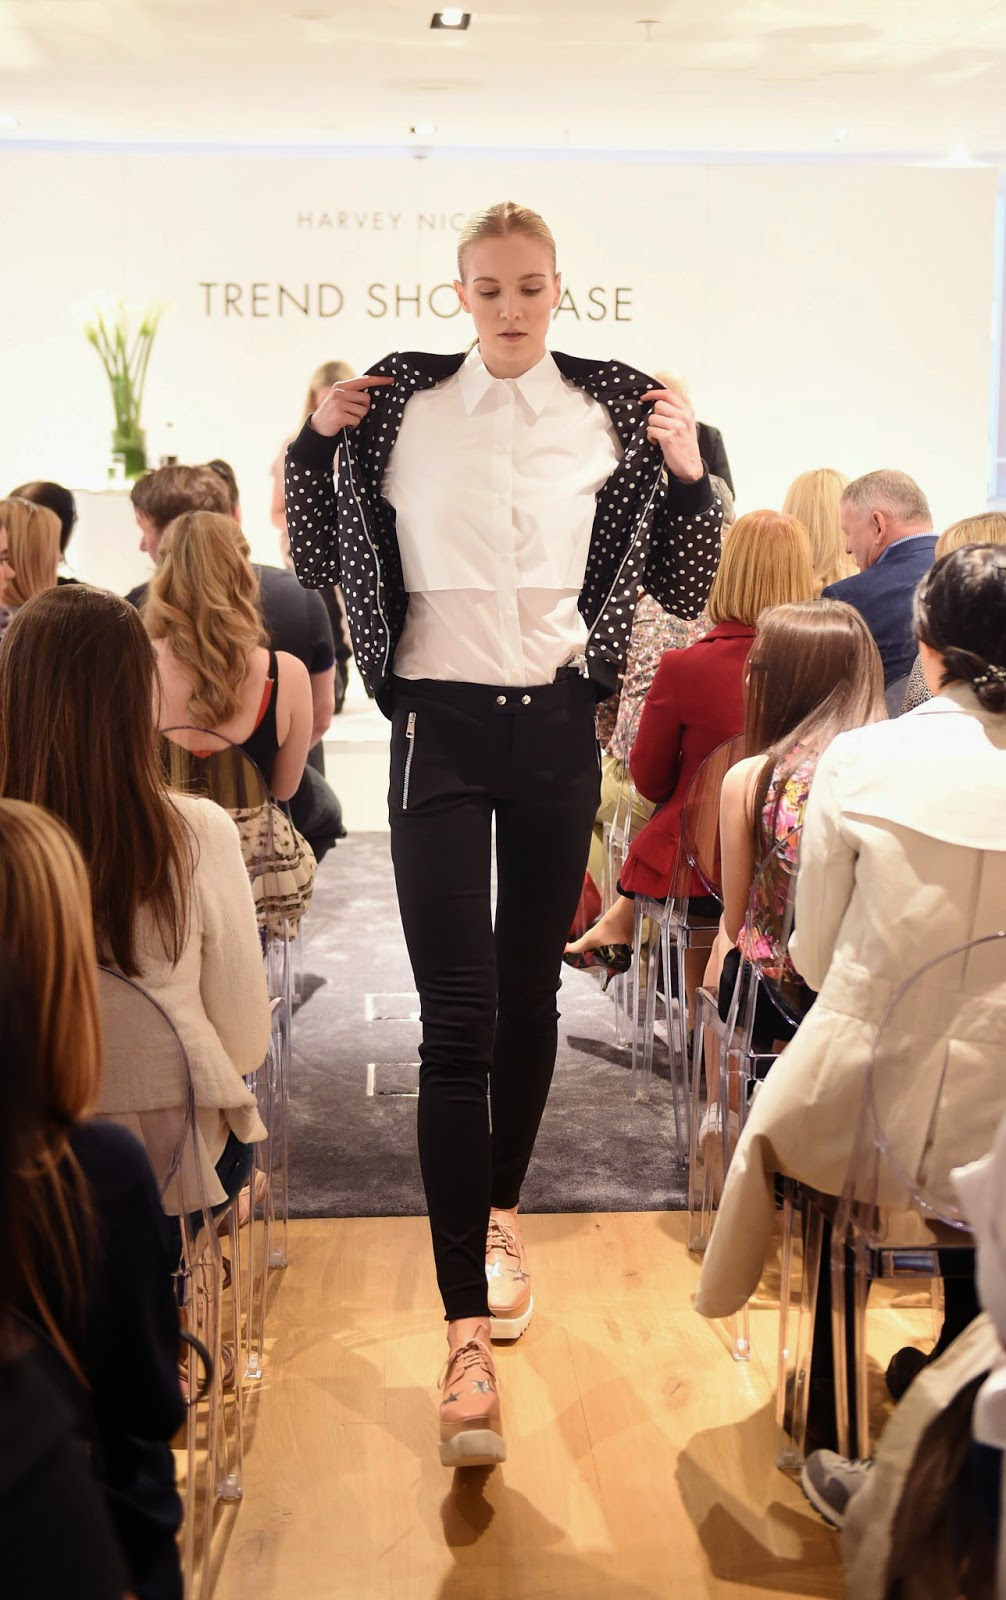 Harvey Nichols Trends Showcase